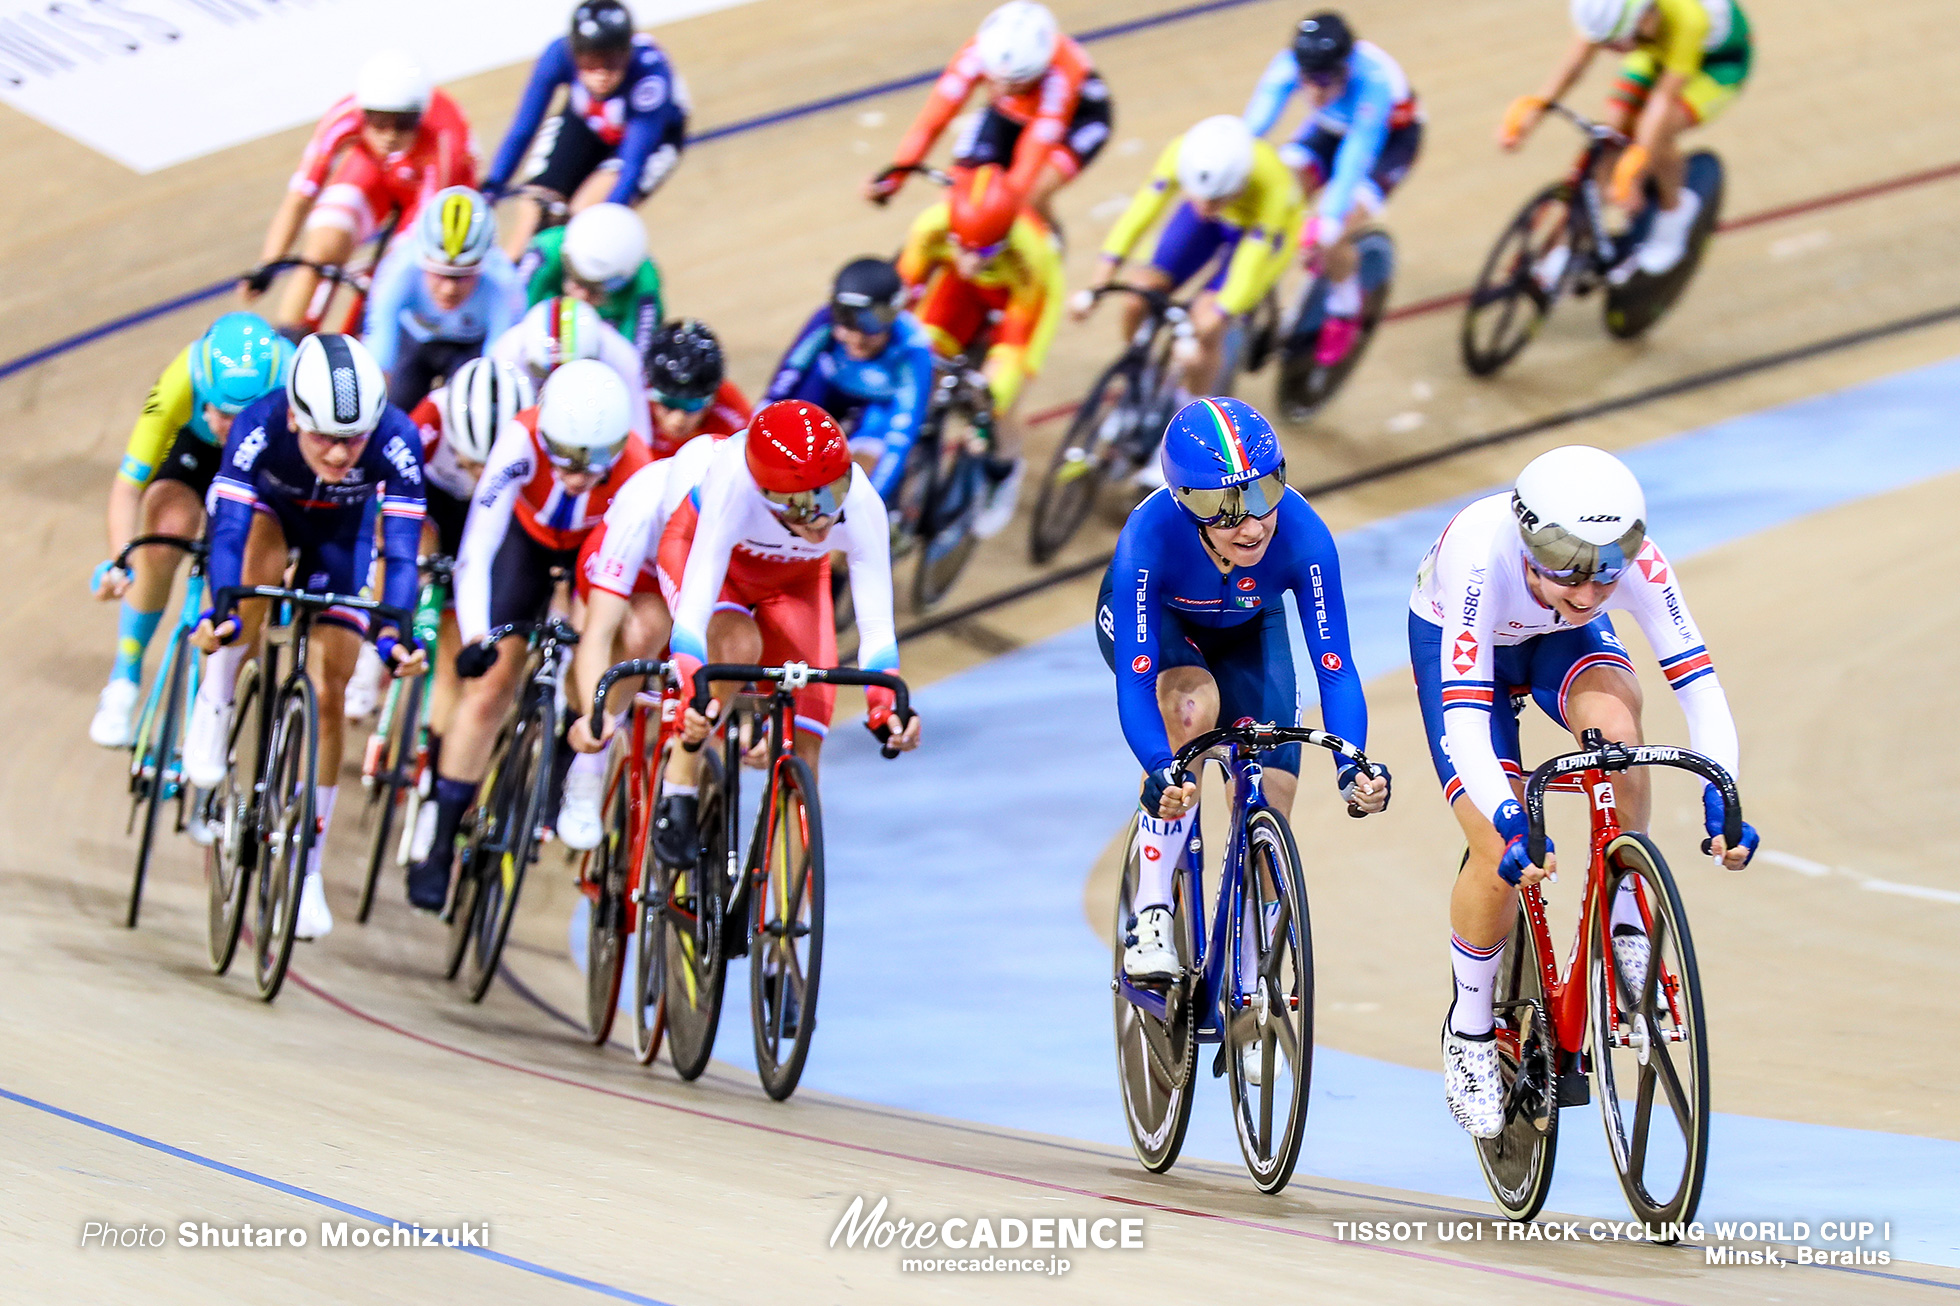 Women's Omnium / Men's Individual Pursuit / TISSOT UCI TRACK CYCLING WORLD CUP I, Minsk, Beralus